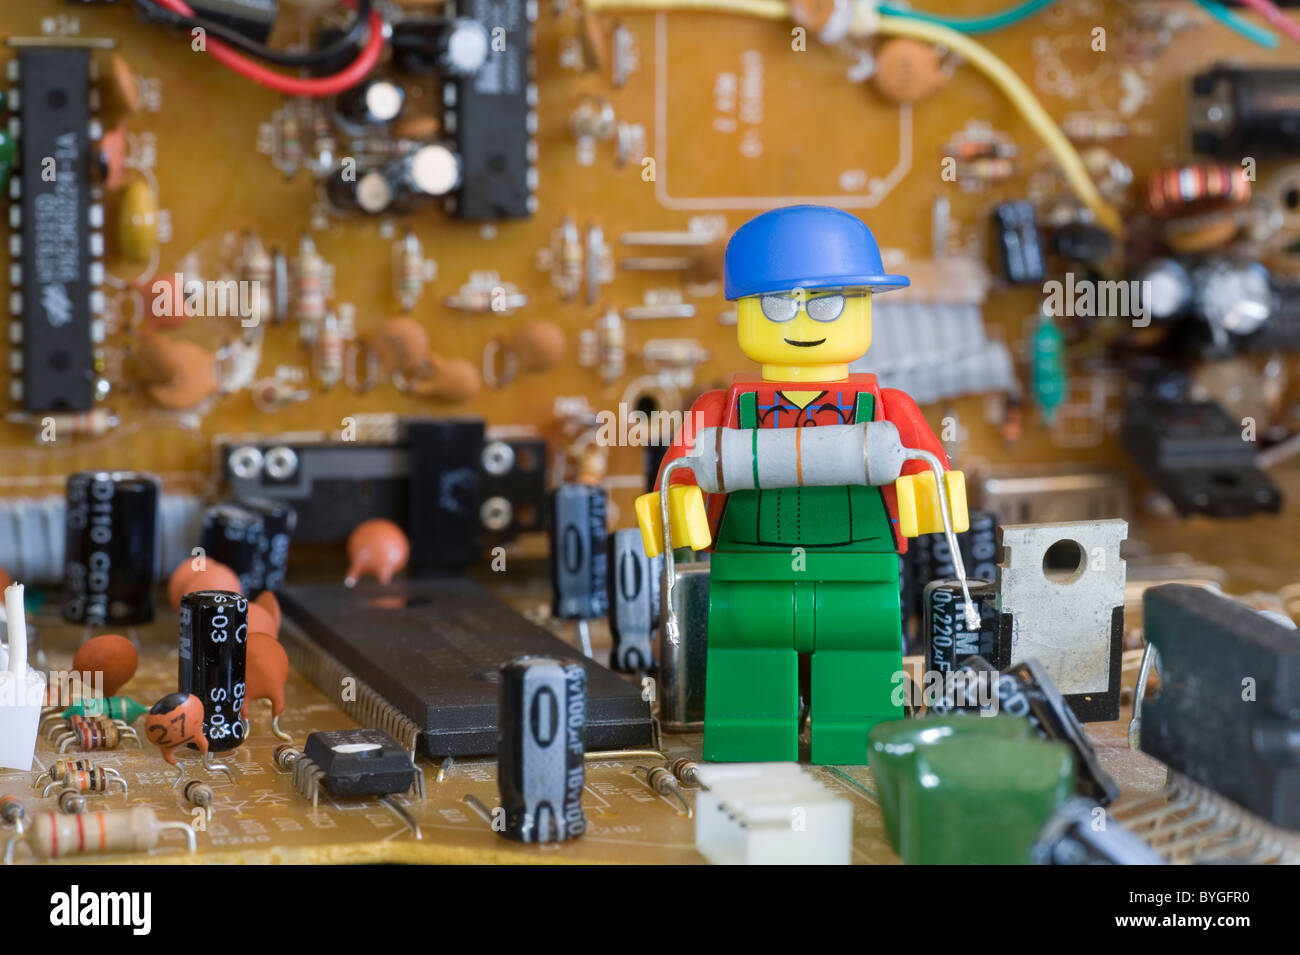 Lego engineer on an electronic circuit board holding an electronic     Lego engineer on an electronic circuit board holding an electronic resistor  component